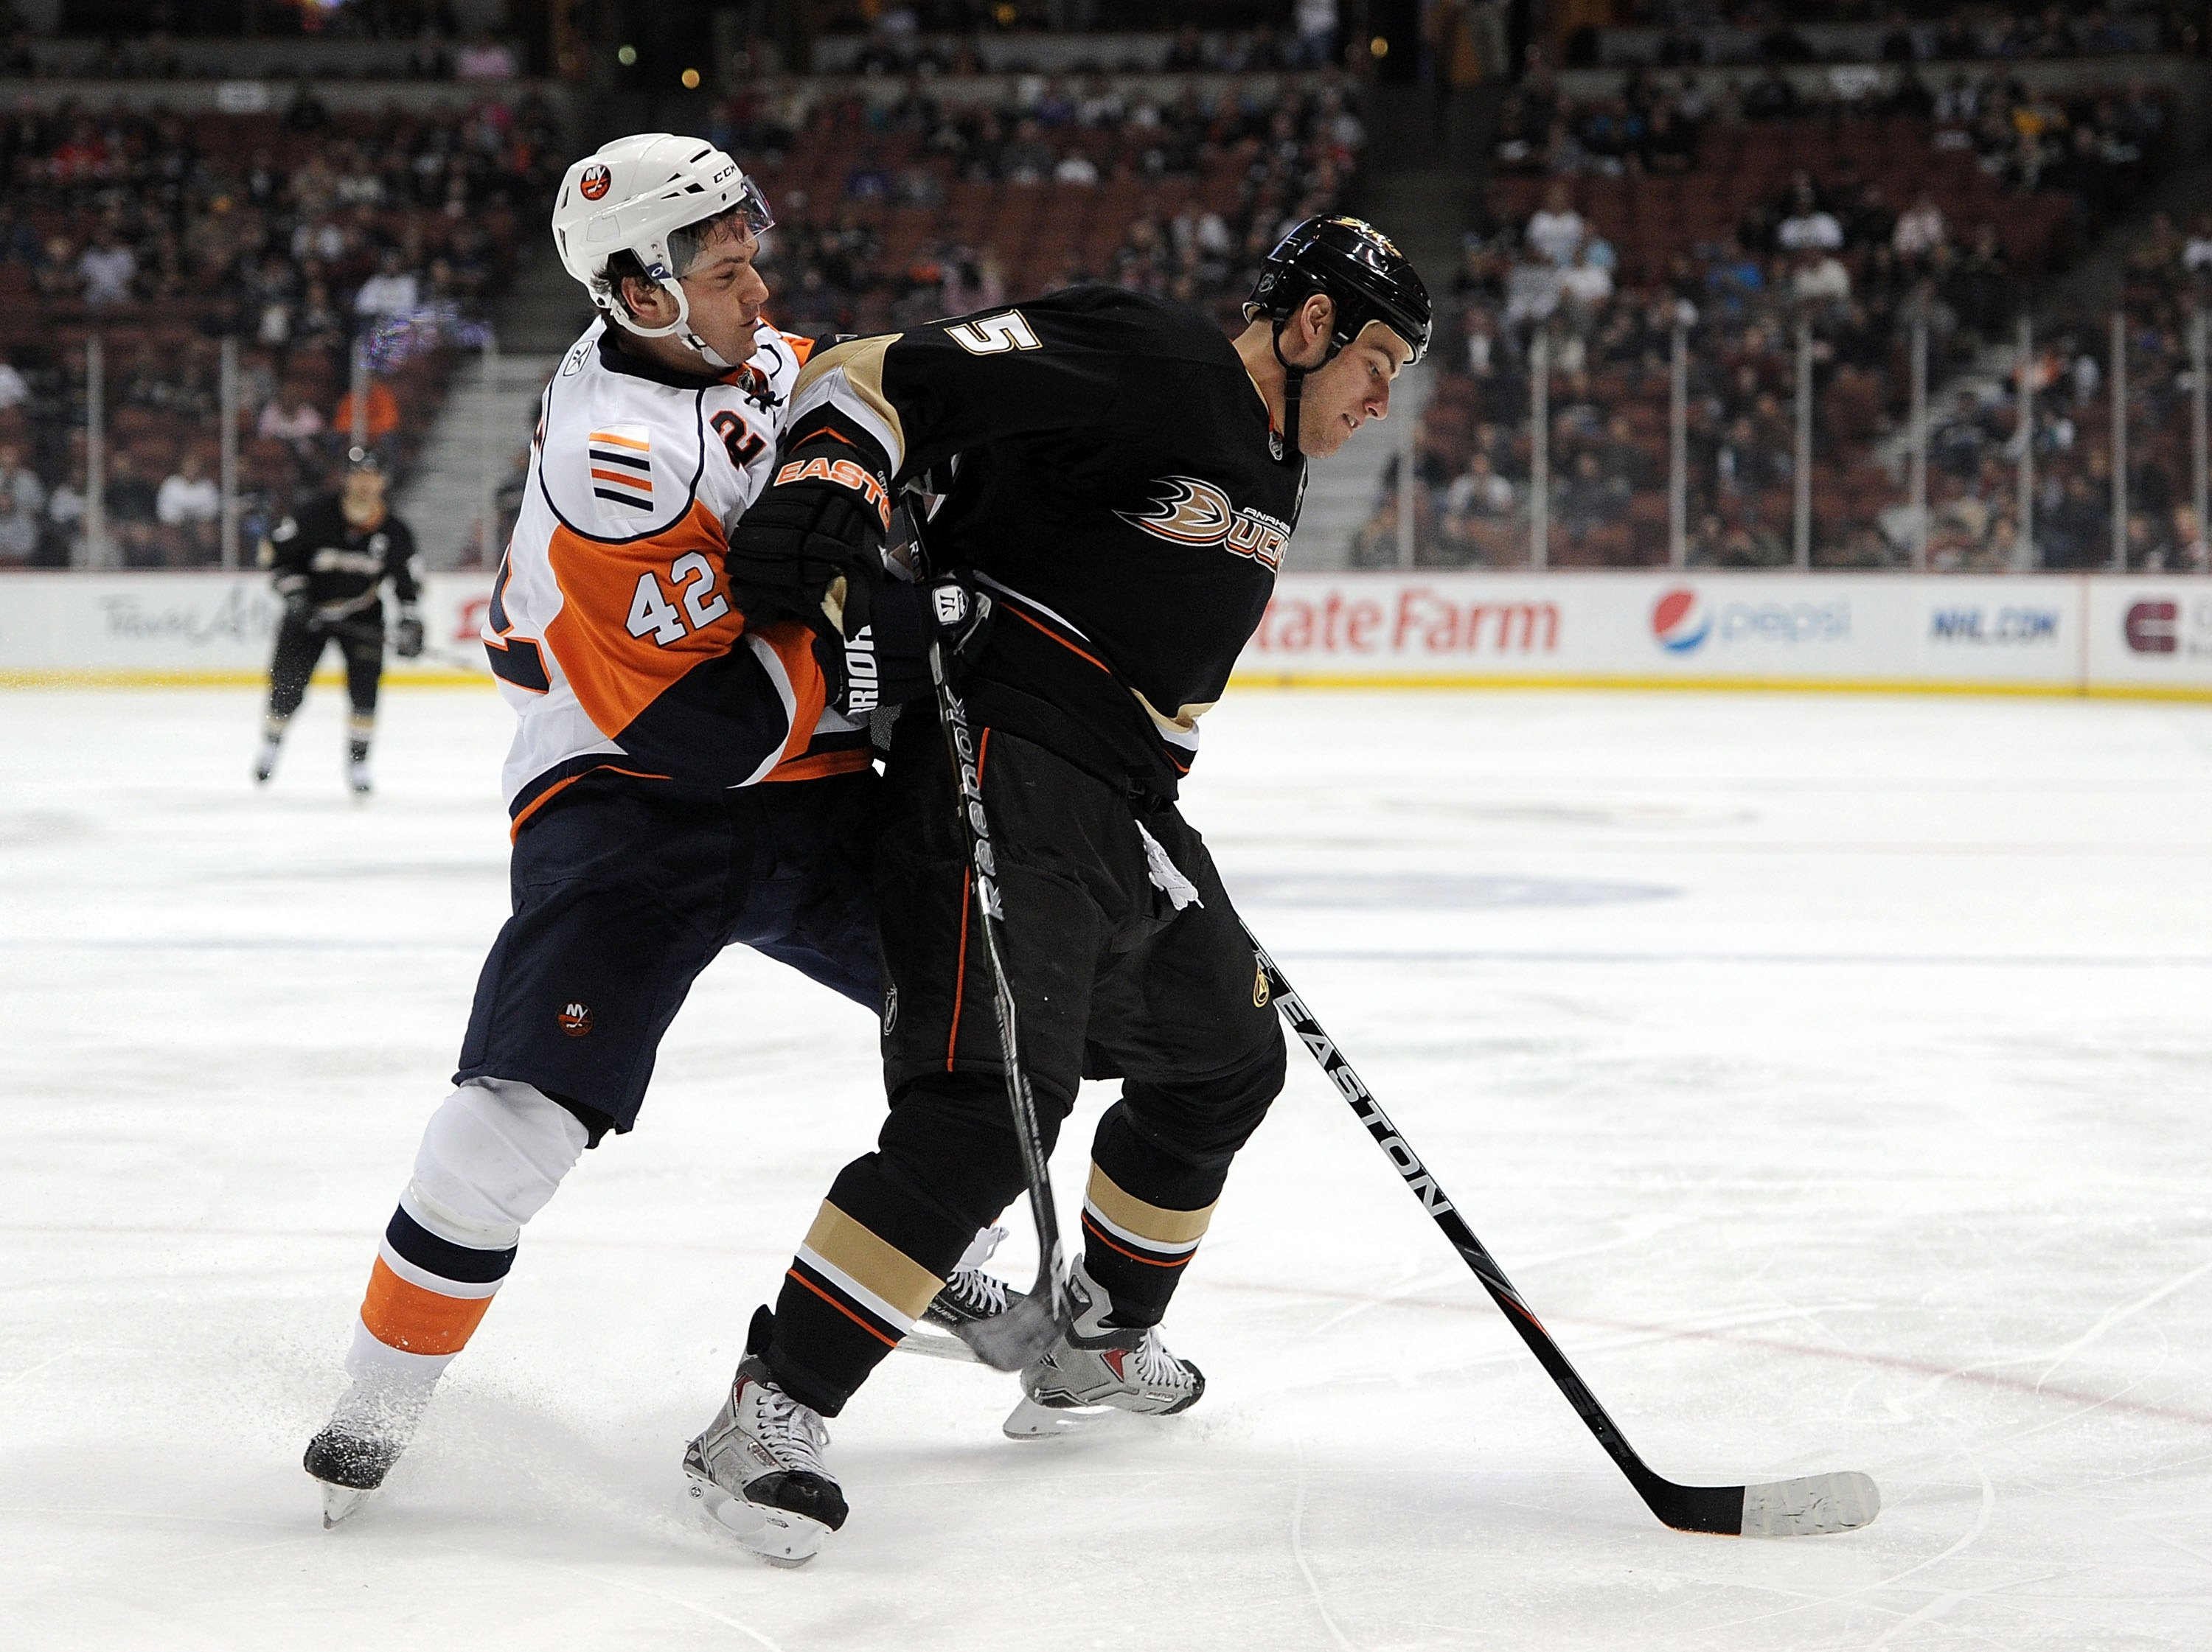 ANAHEIM, CA - MARCH 19:  Ryan Getzlaf #15 of the Anaheim Ducks fends off Dylan Reese #42 of the New York Islanders at the Honda Center on March 19, 2010 in Anaheim, California.  (Photo by Harry How/Getty Images)